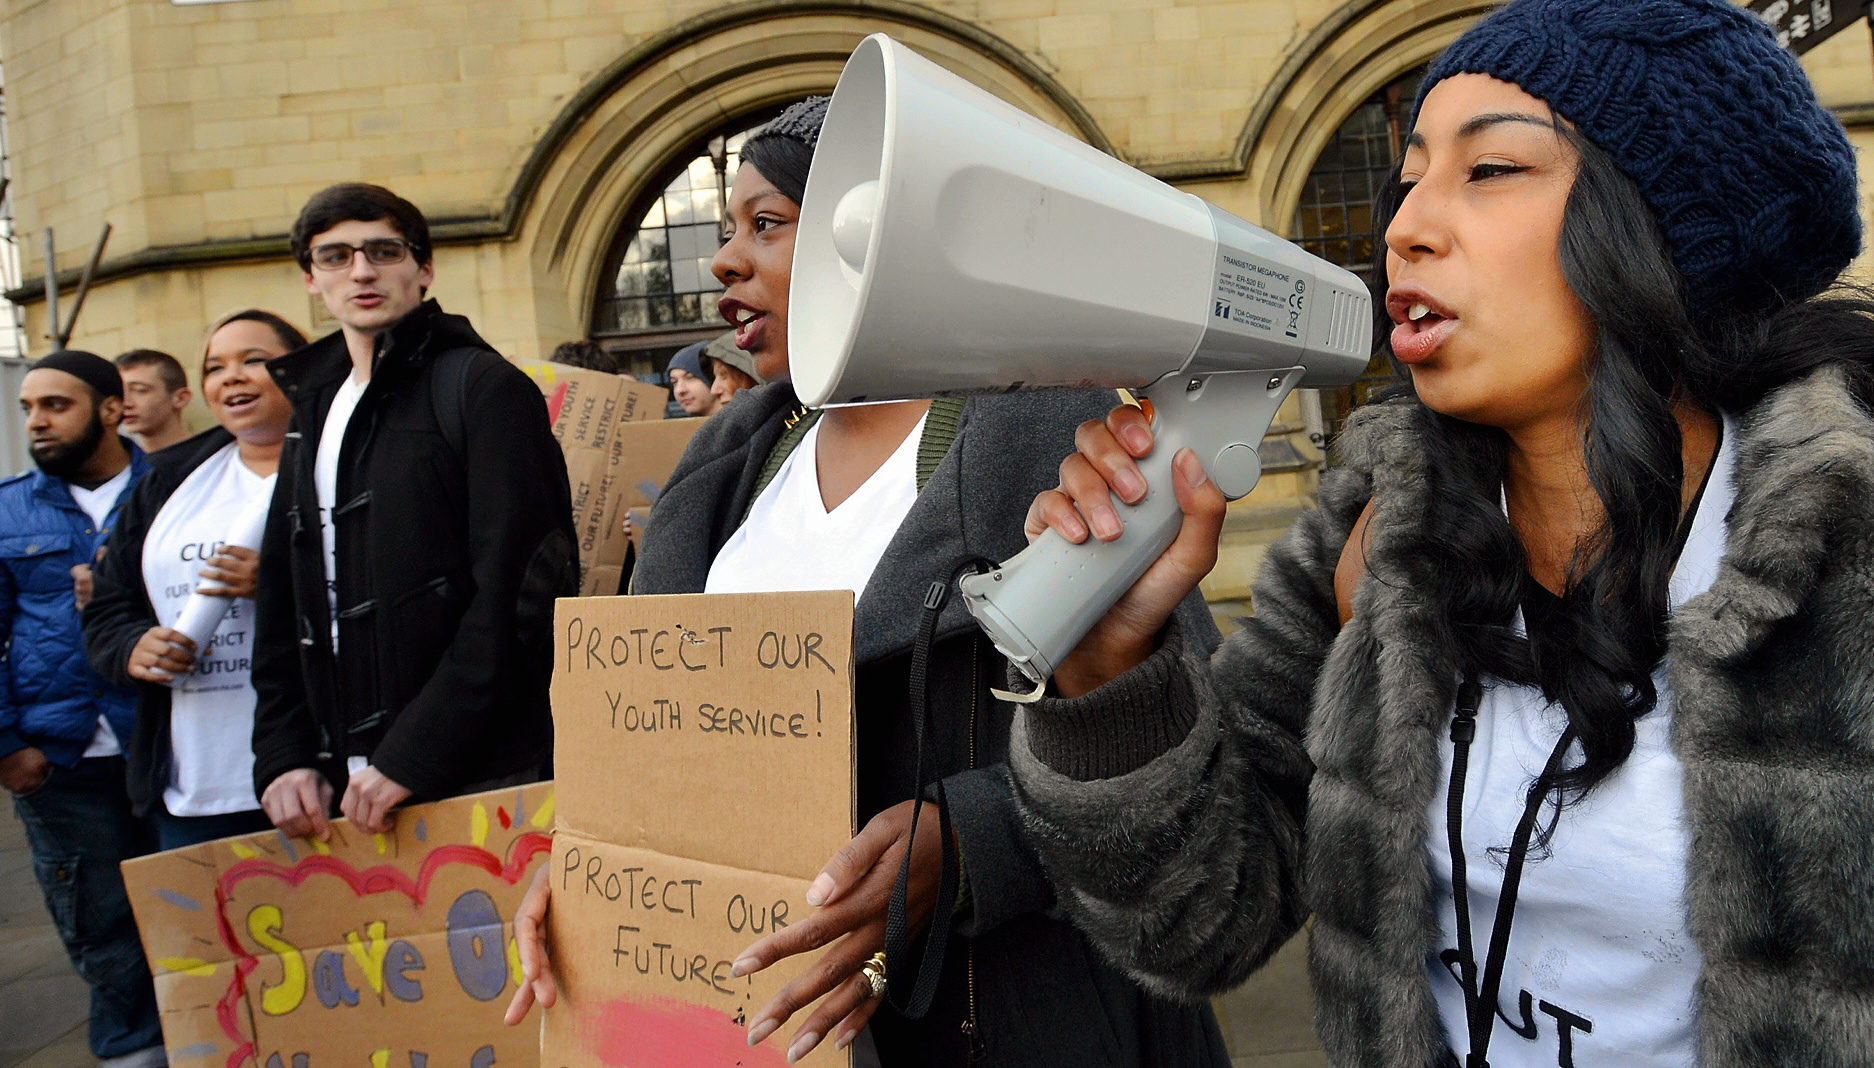 Protests about cuts in youth services were listened to by the Council